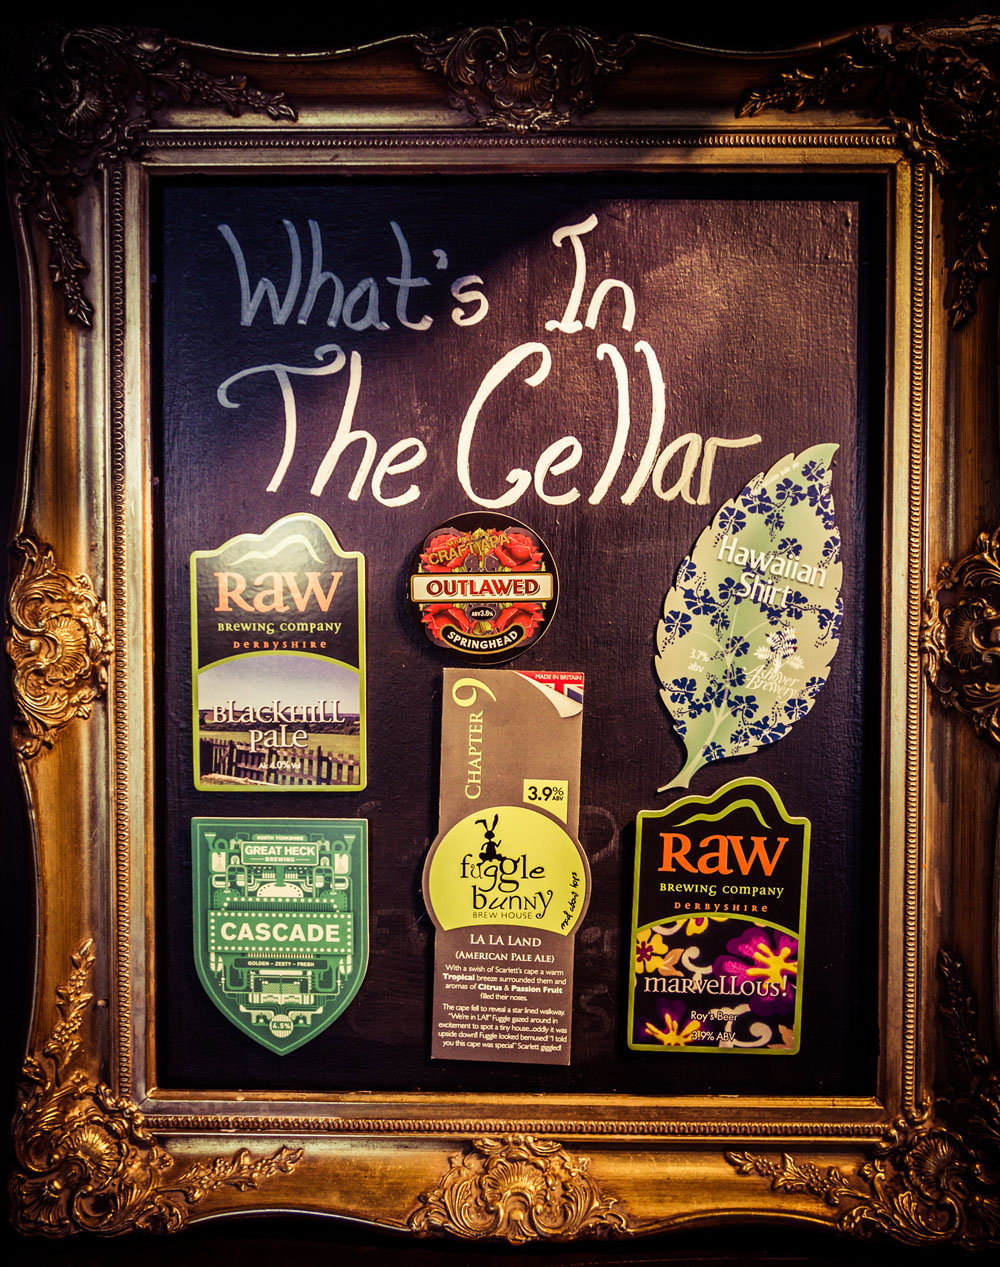 Cask Ales - The Running Pump proudly serves a minimum of 3 guest cask ales. You can expect brews from local brewers such as Bowland & Lytham Brewery along with guest ales from further afield.